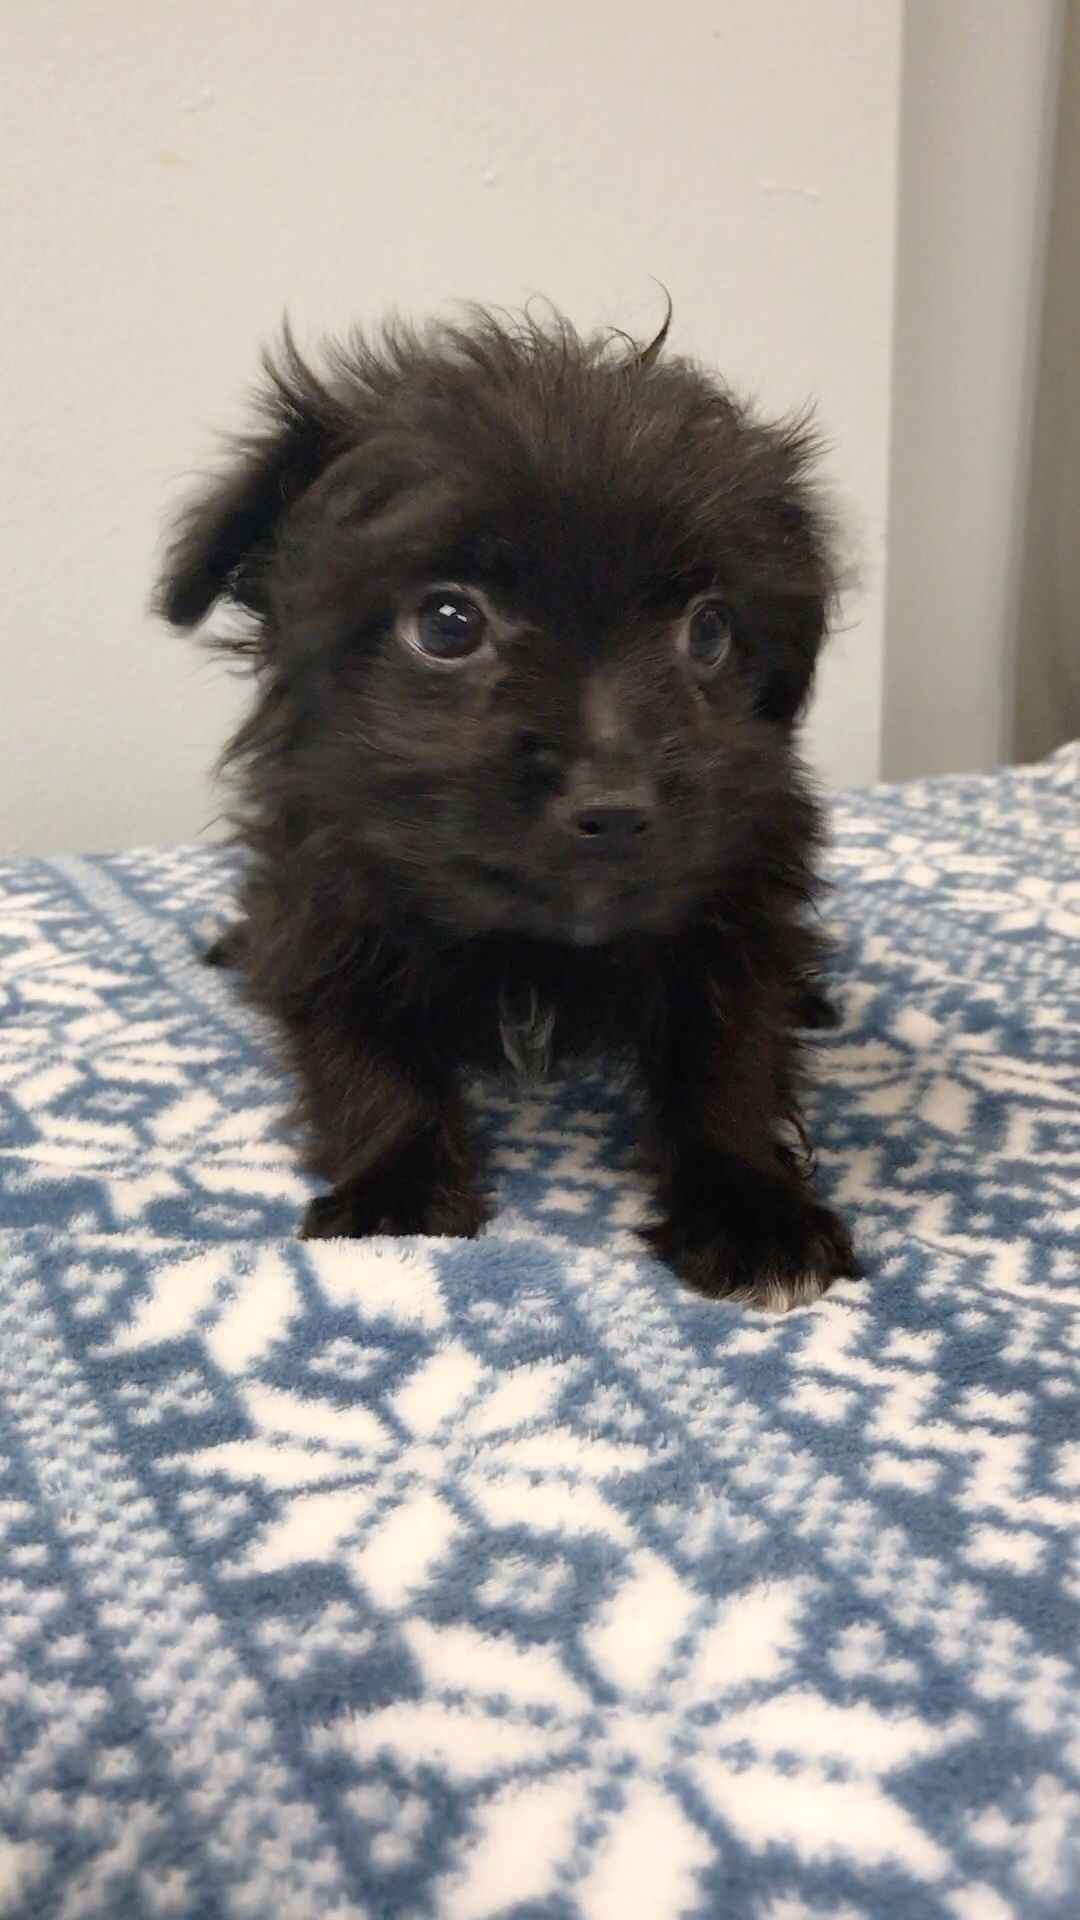 Pin by Lisa A on PUPPY ALERT!!!!!! | Dogs, Brussels griffon